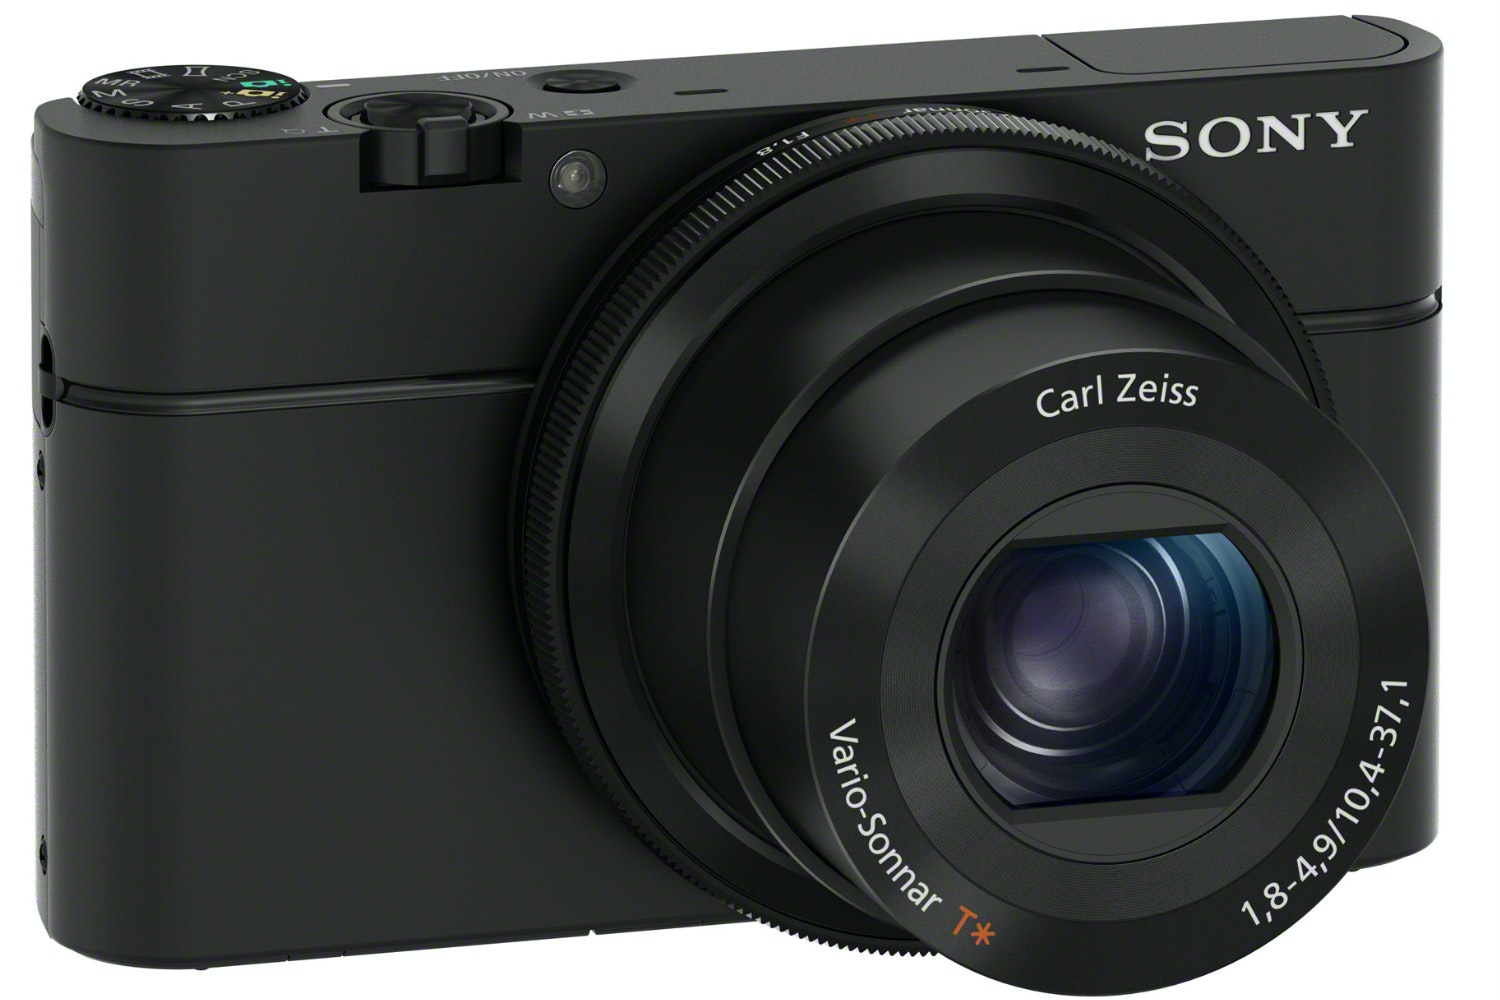 Sony RX100 Digital Camera